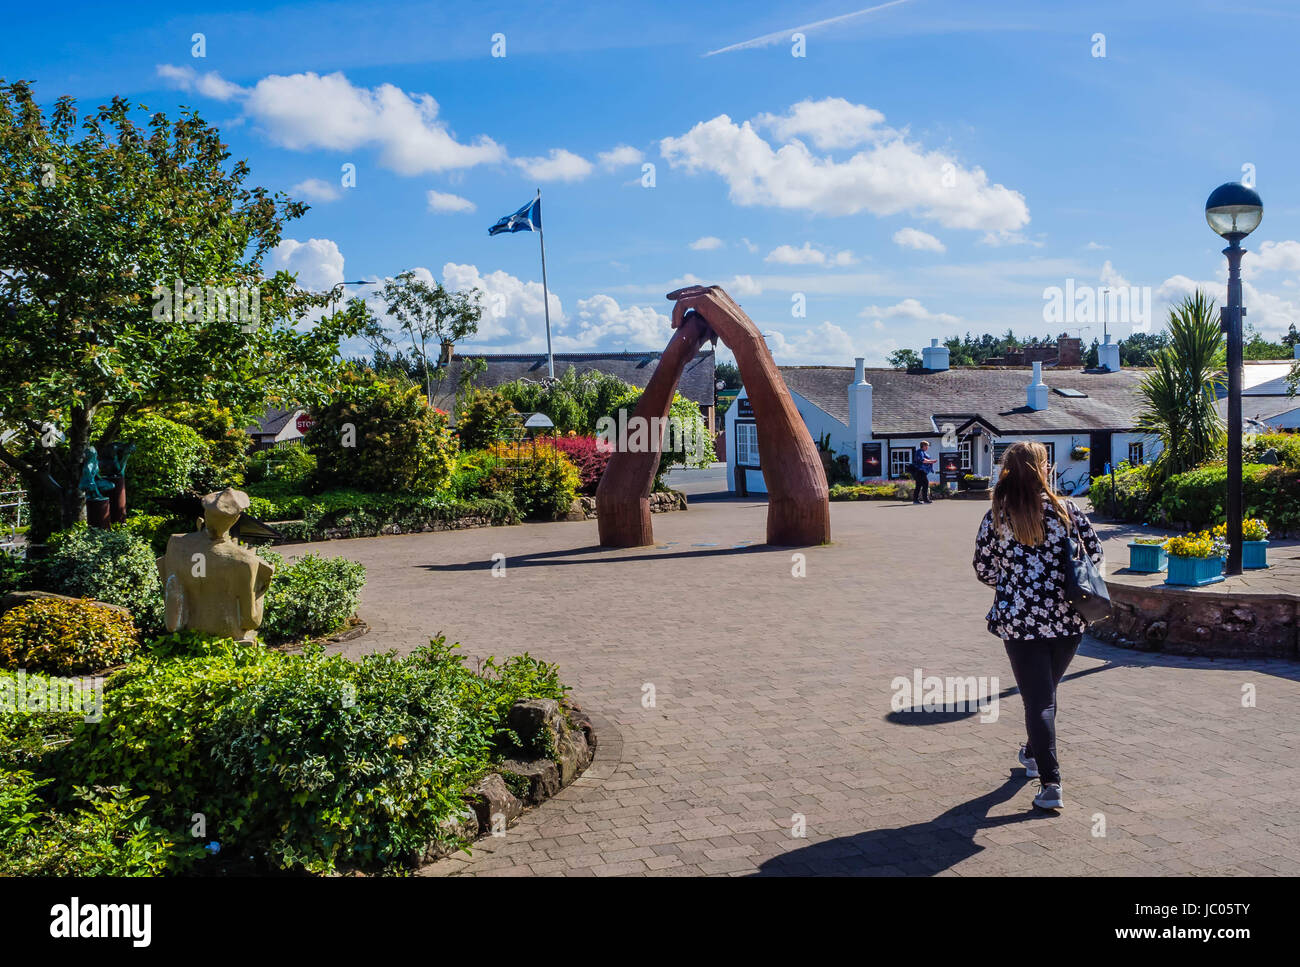 big-dance-sculpture-gretna-green-JC05TY.jpg